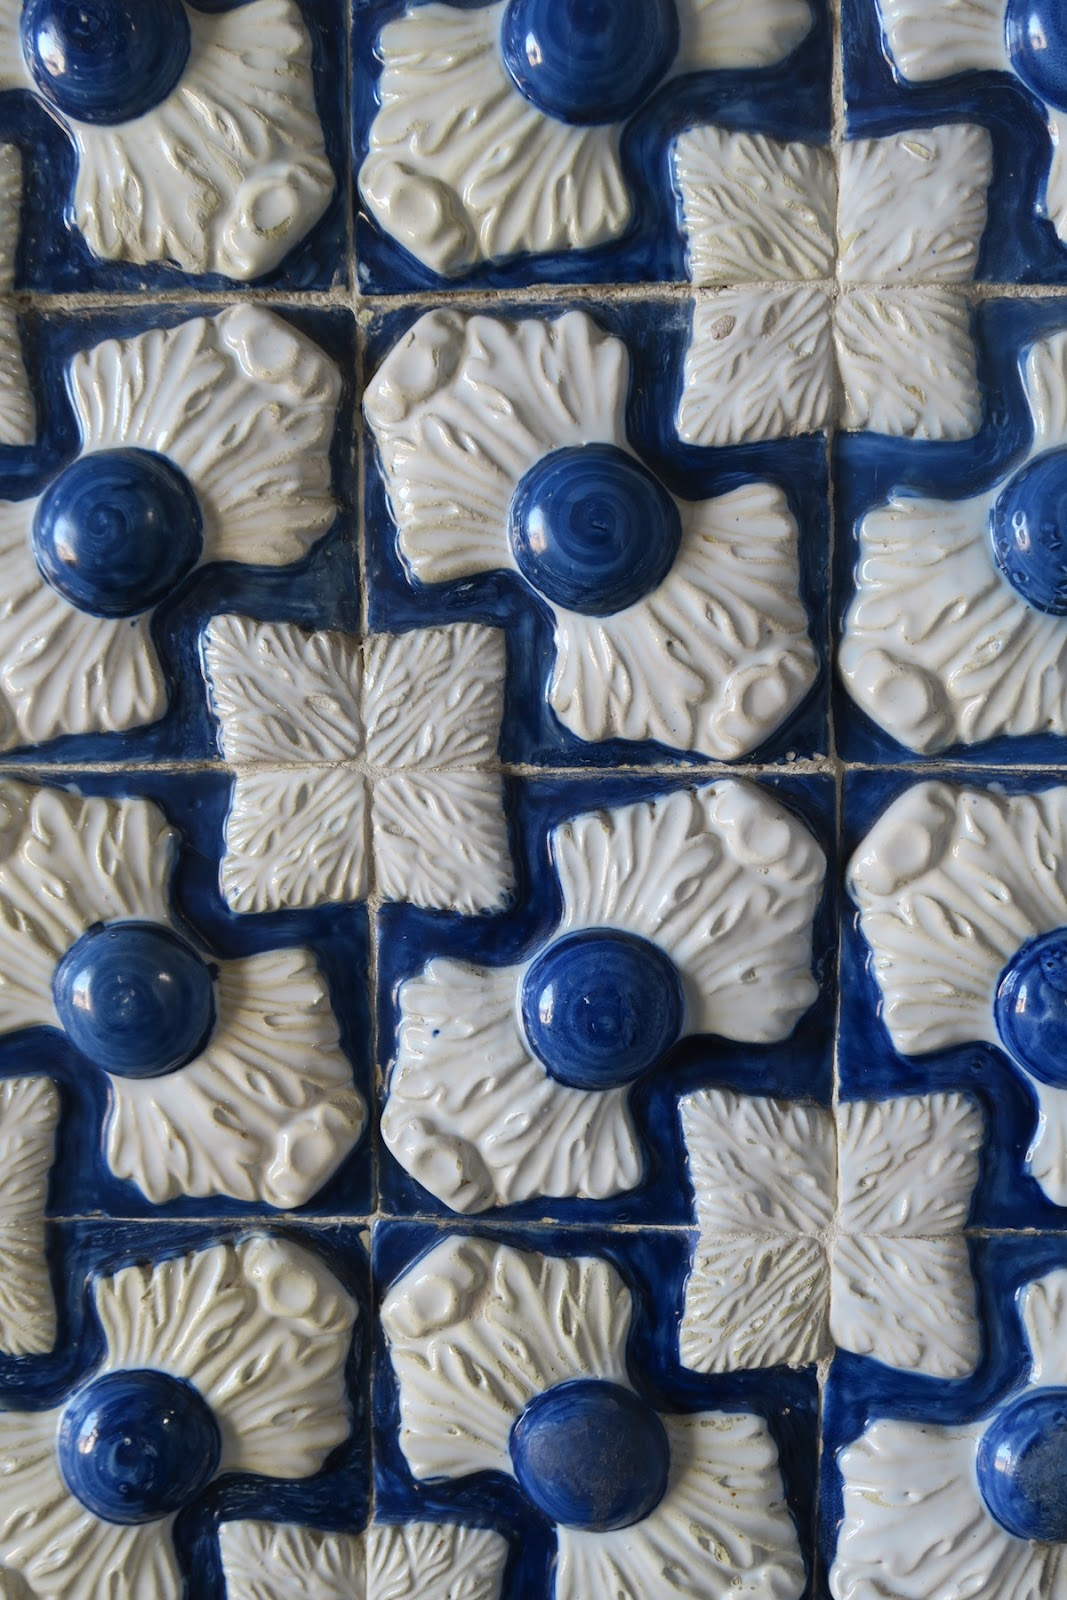 This is a close up of the tiles at the Palacio da Pena.